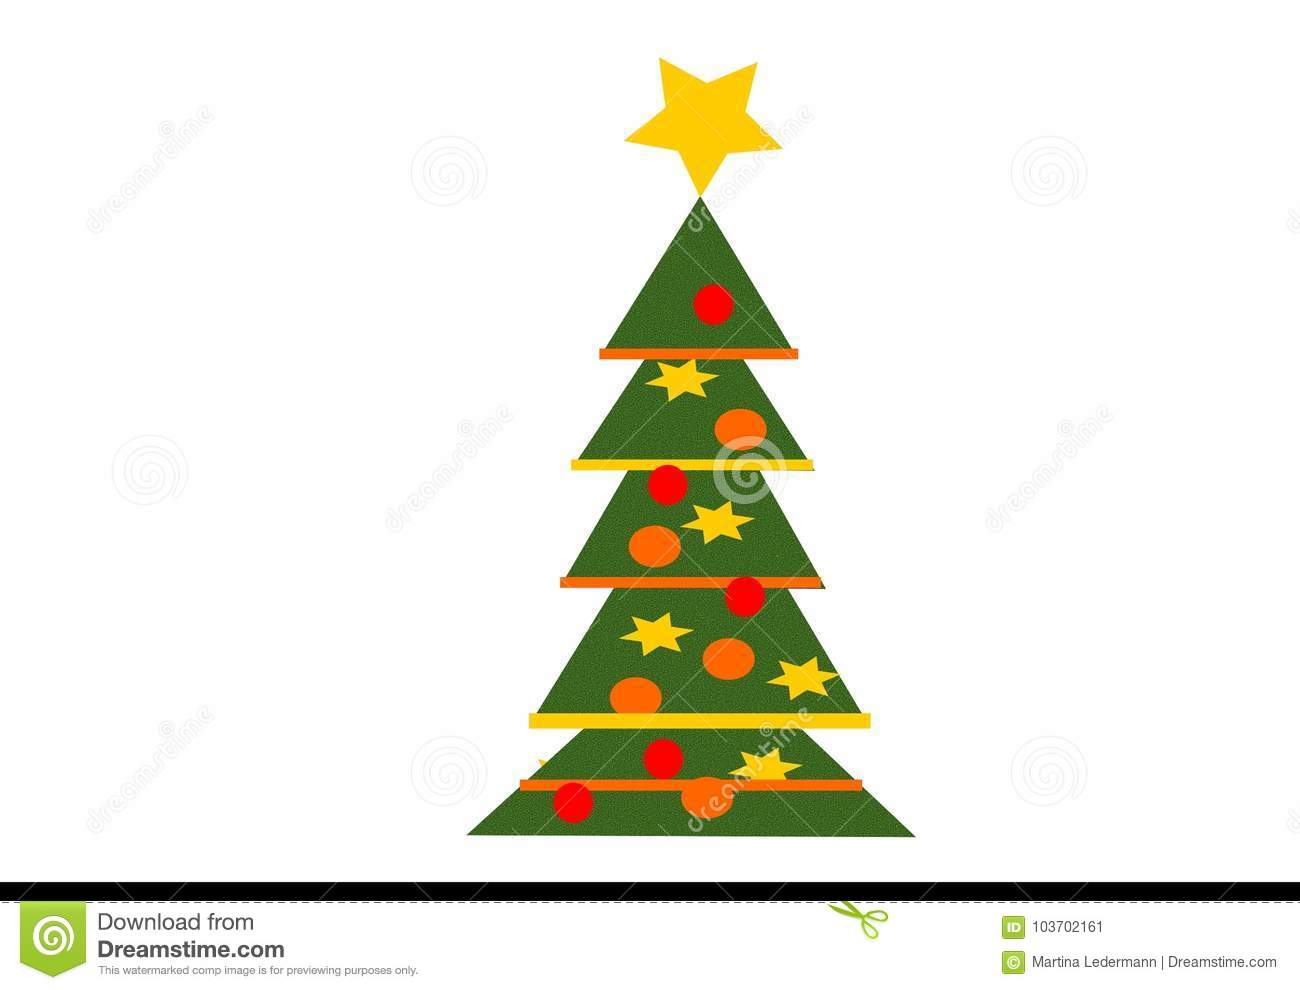 a decorated christmas tree with a golden star